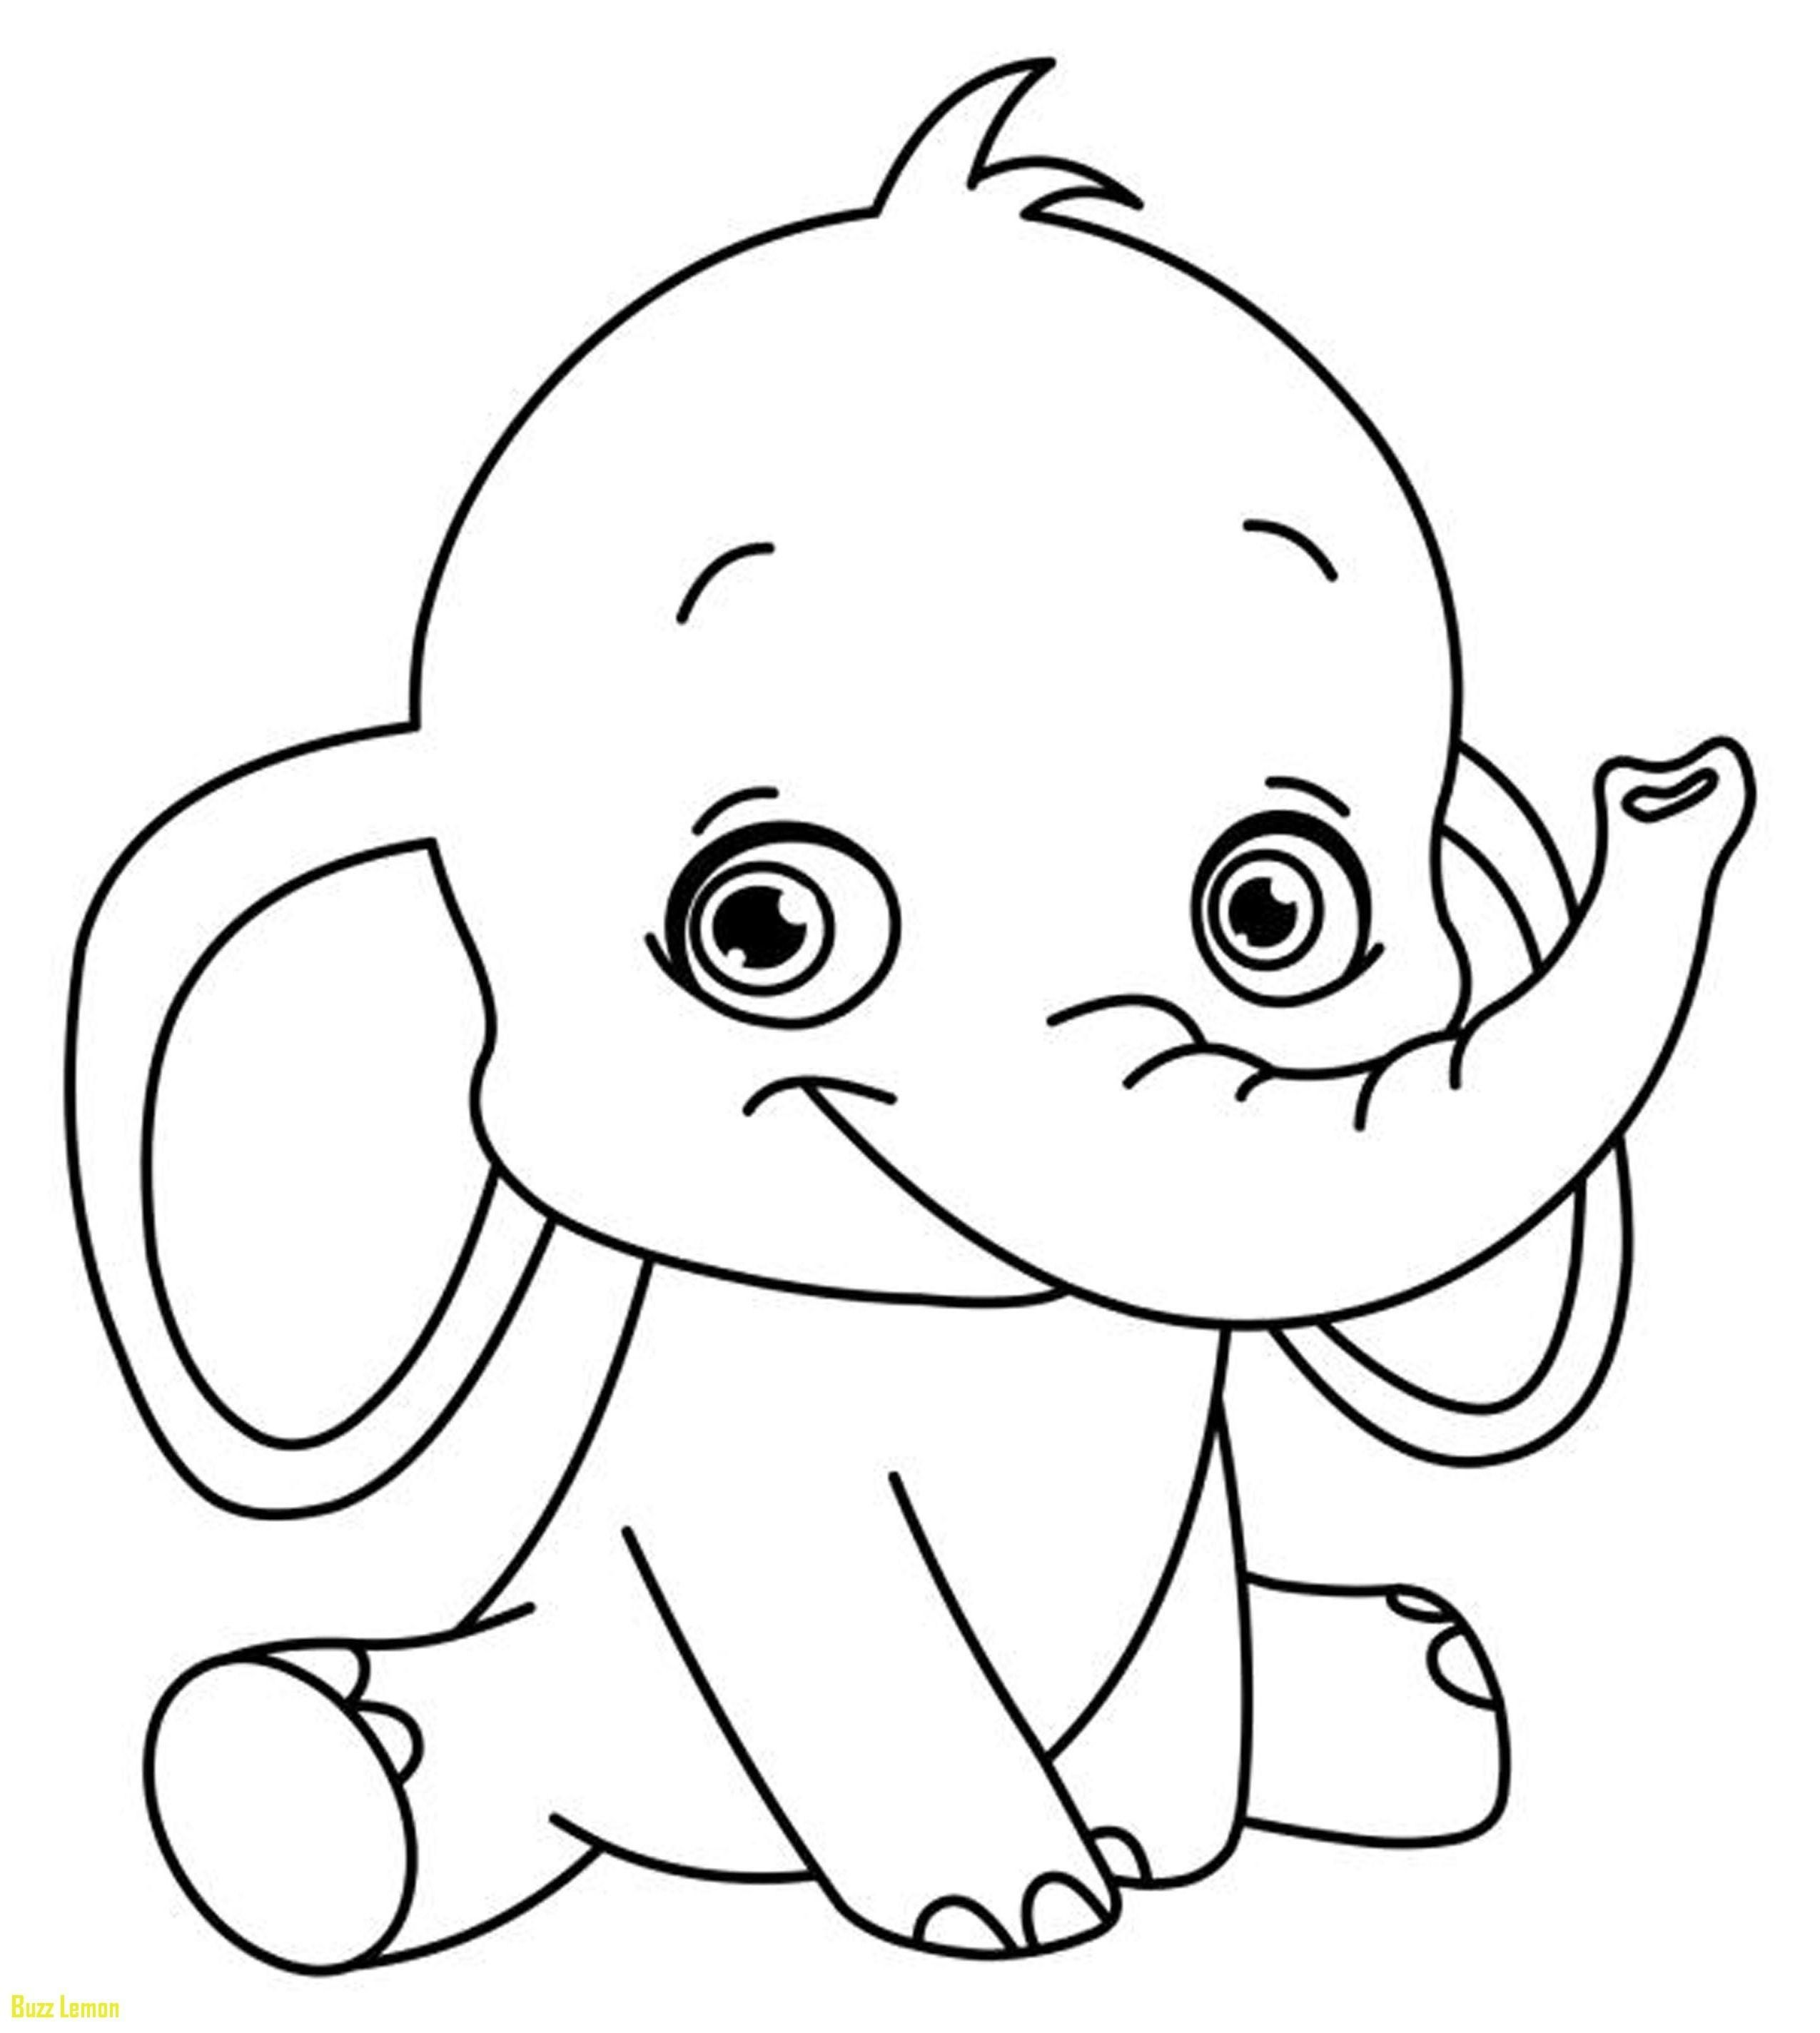 38 Easy Printable Coloring Pages In 2020 Elephant Coloring Page Easy Coloring Pages Kids Printable Coloring Pages